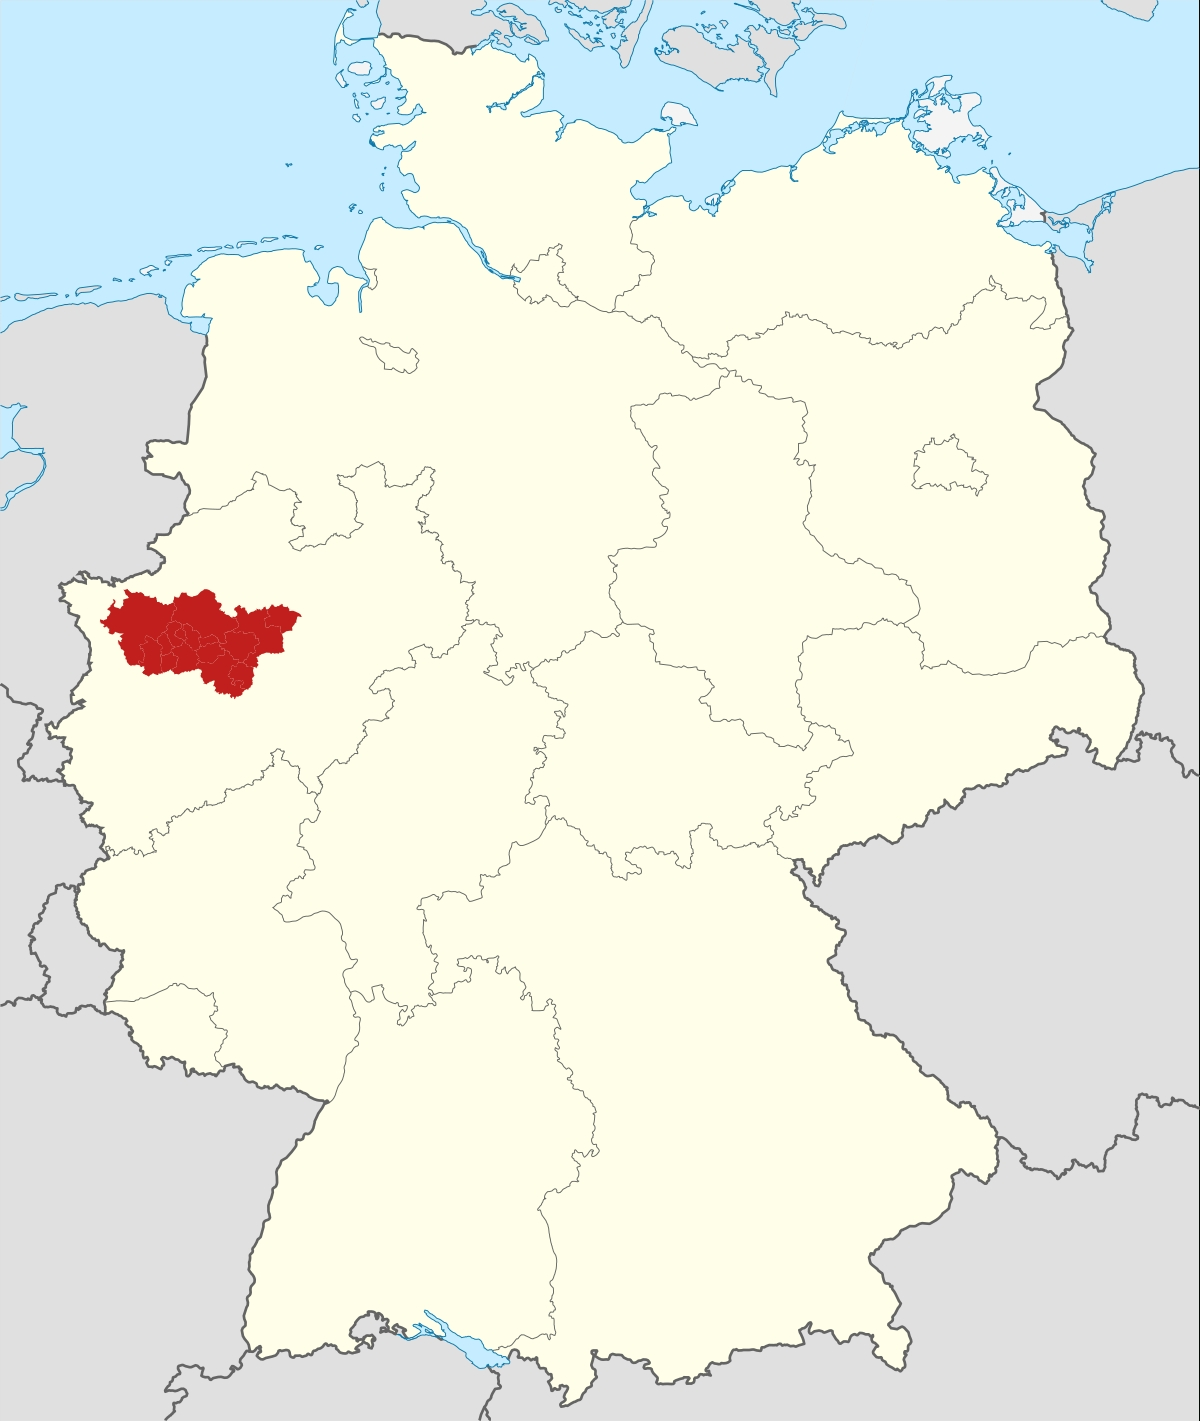 Ruhr - Wikipedia intended for Germany World Heritage Sites Map